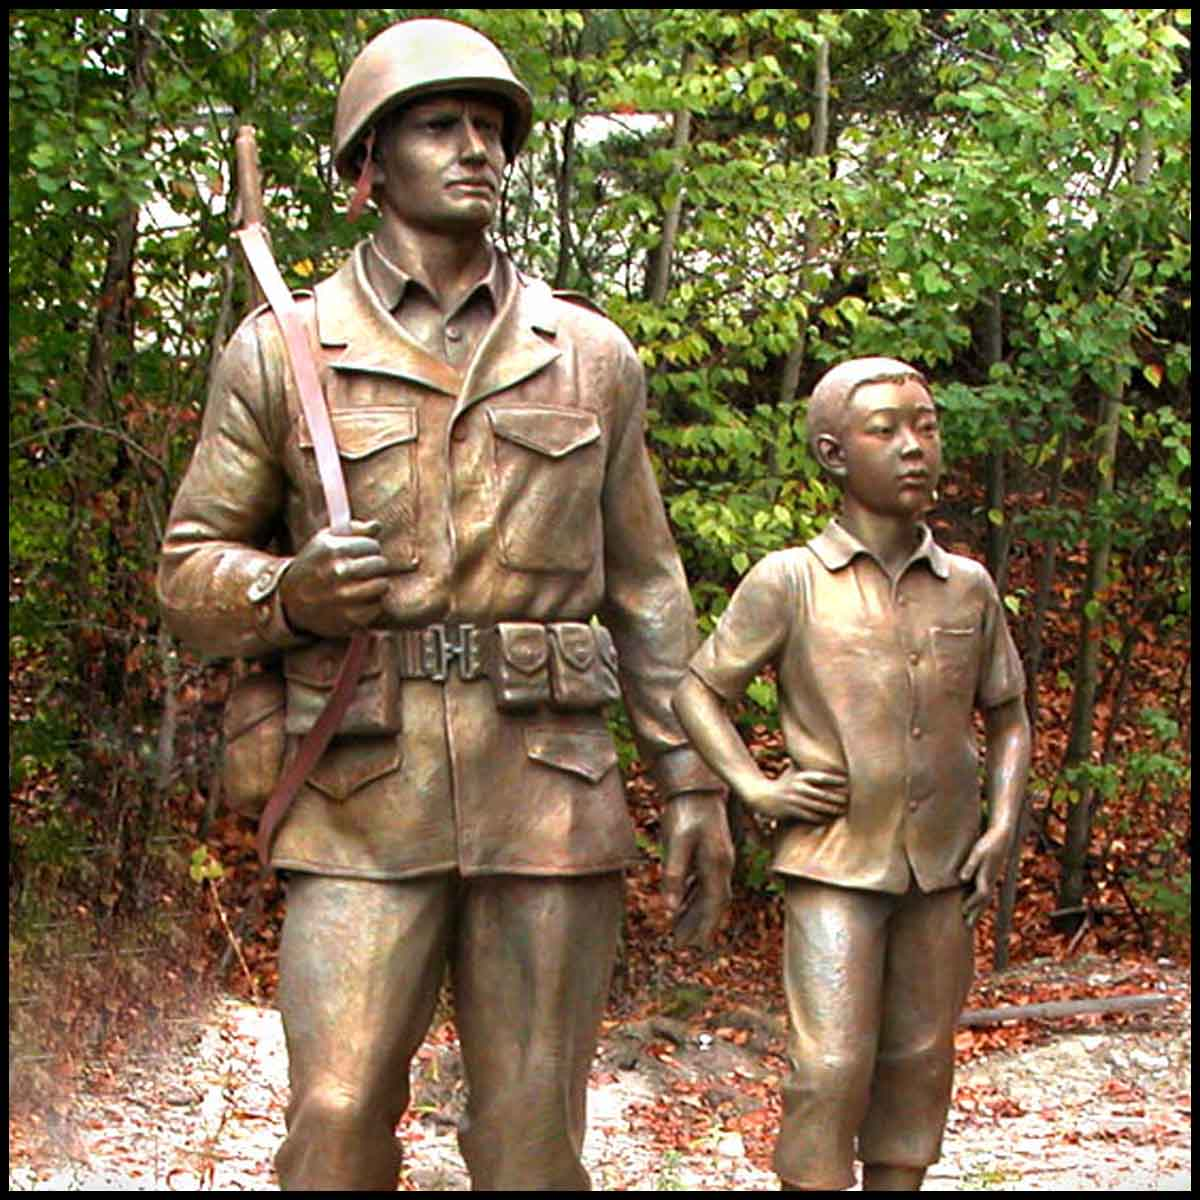 photo of bronze-colored sculpture of American male soldier and Korean boy with trees behind